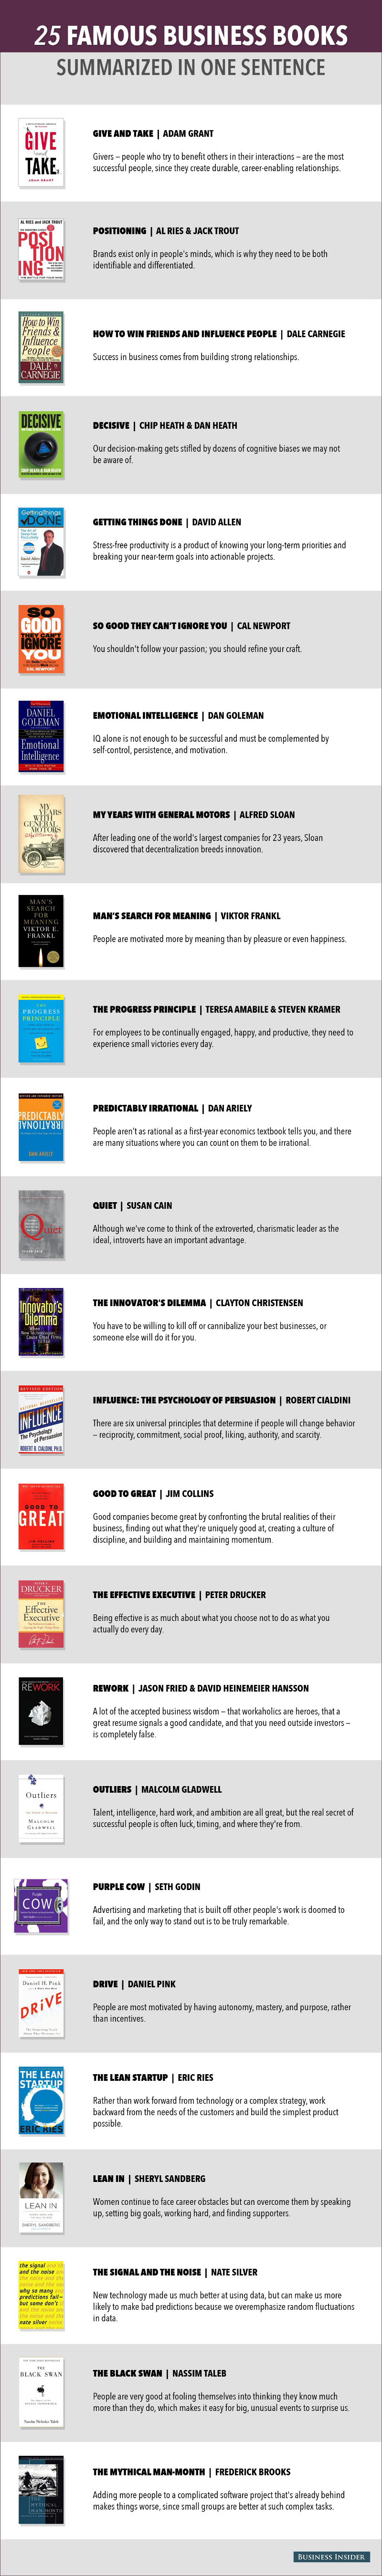 Famous-Business-Books